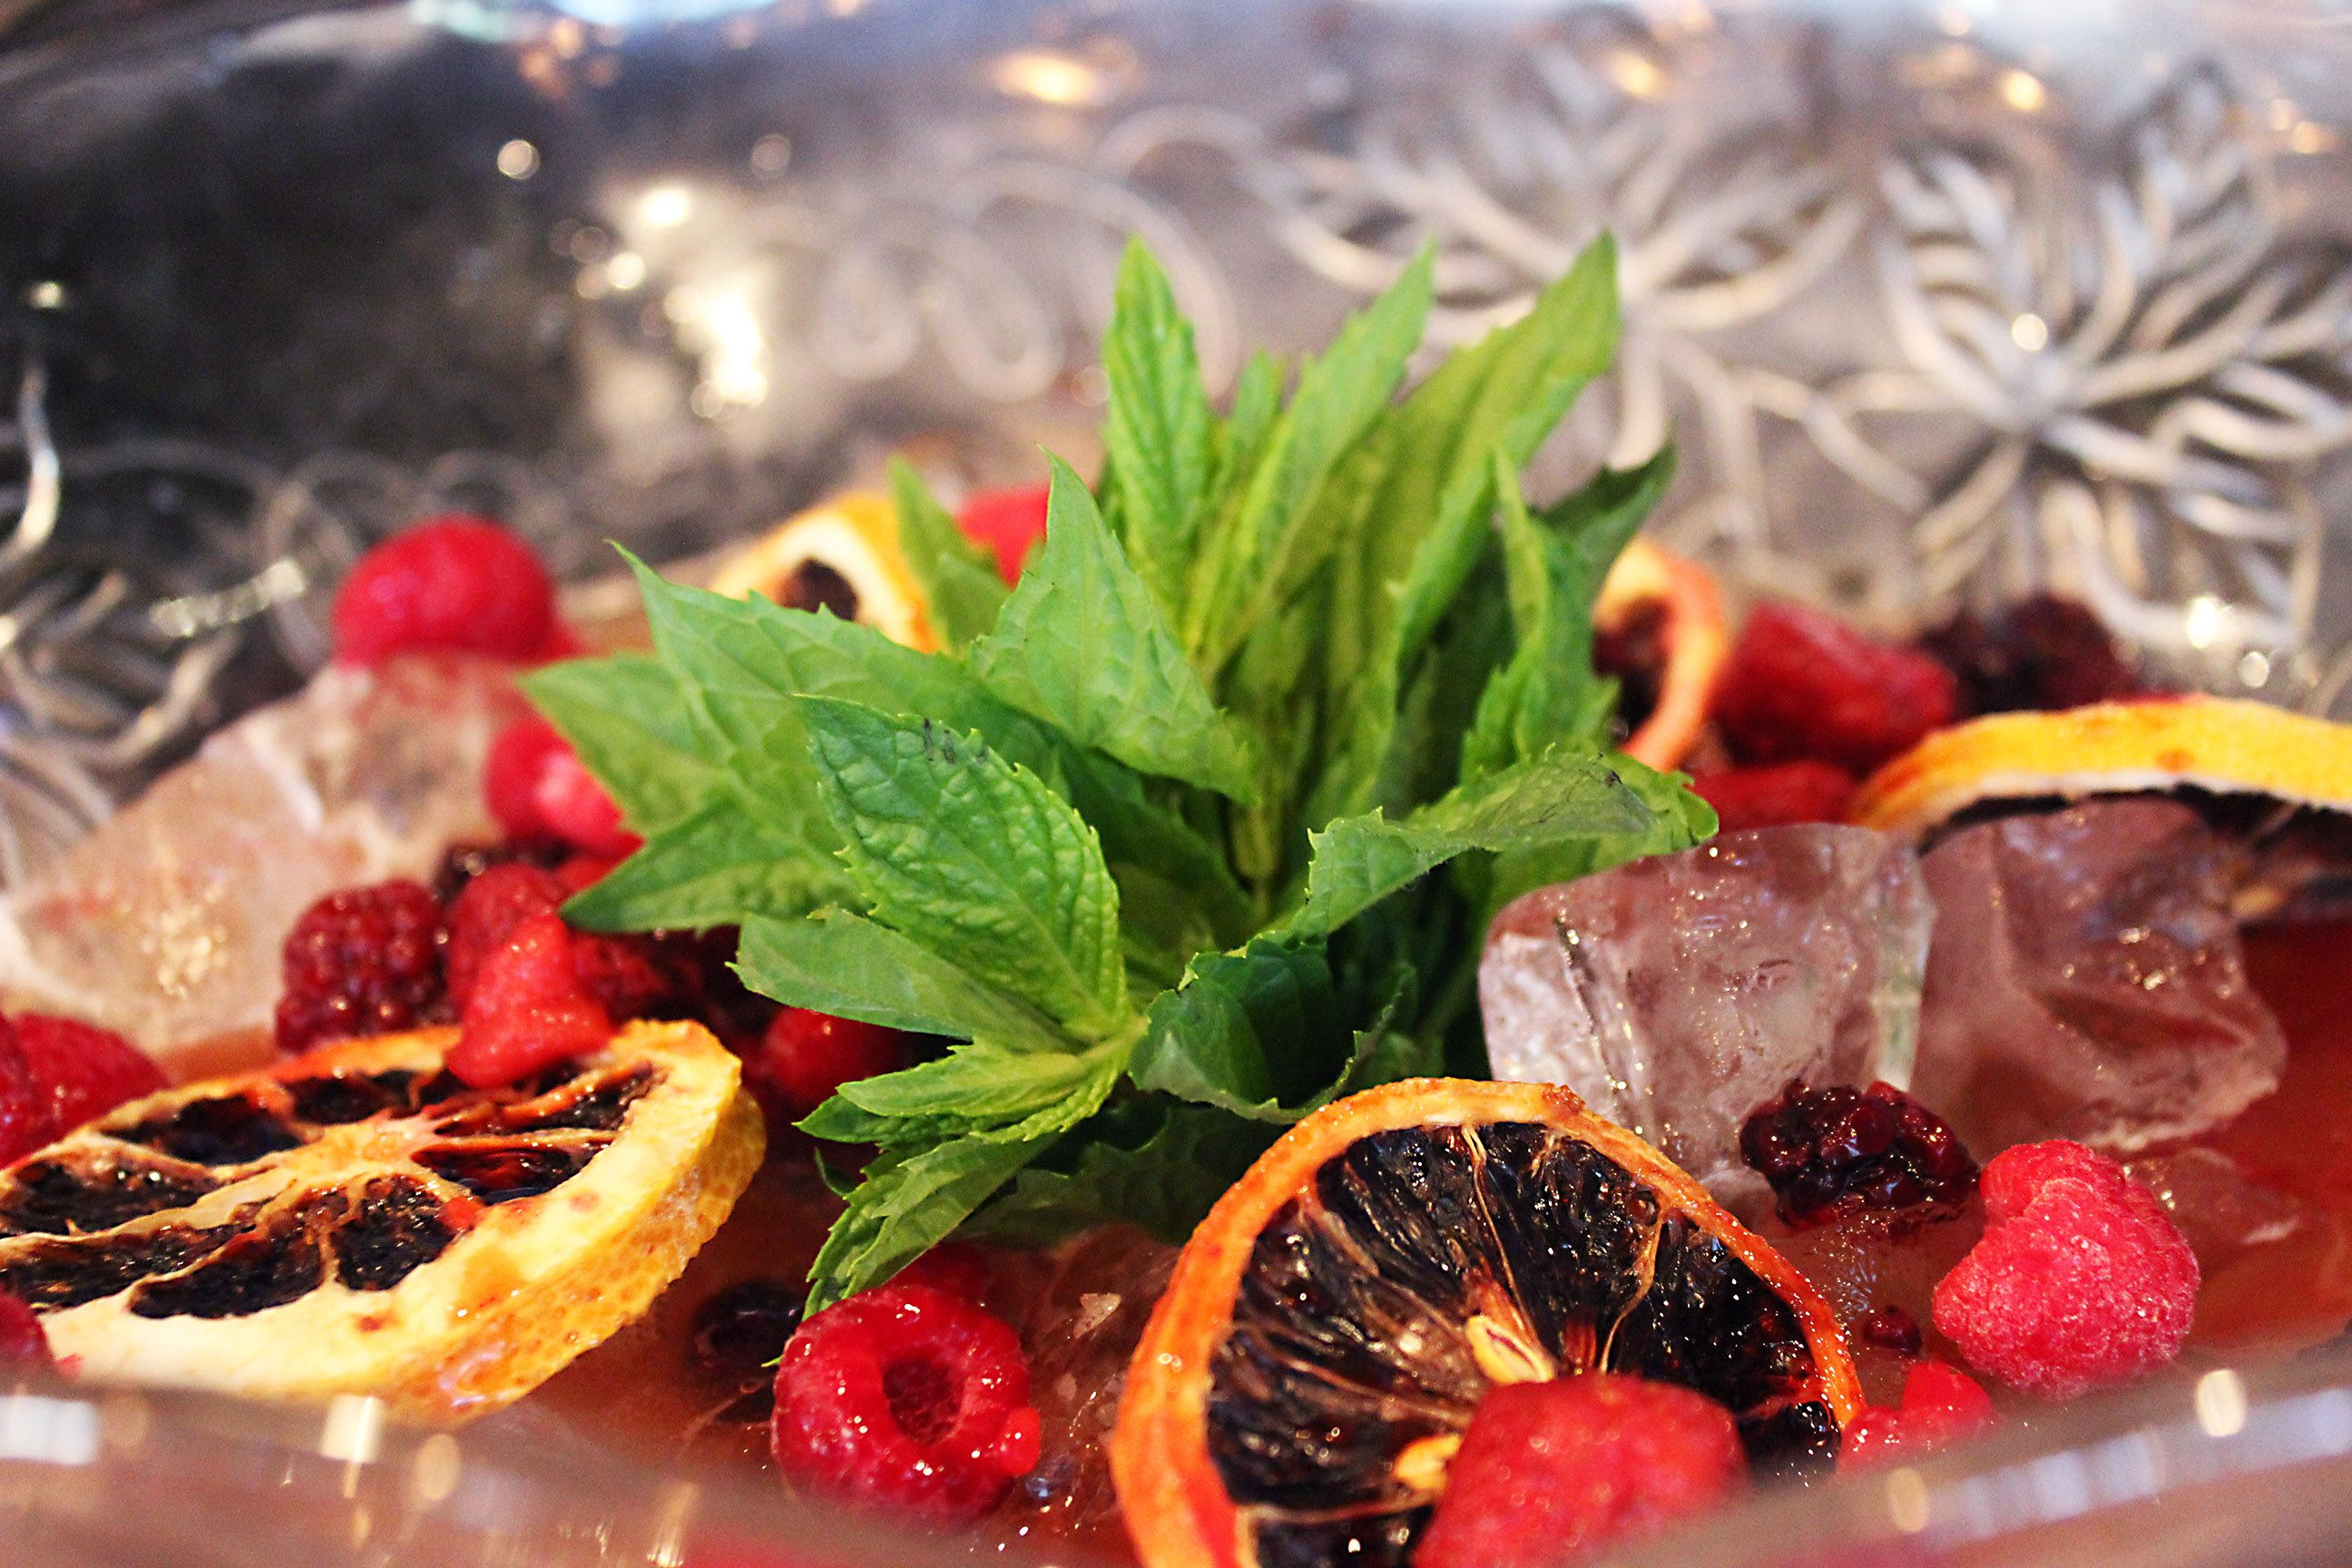 $39 PUNCH BOWLS - Berrys, Guns & a Fast Car Outa Here. Comprising of port, Orange Juice, Sweet vermouthe, Bitters, creme de mure, mint, pineapple, candied orange and blackberrys